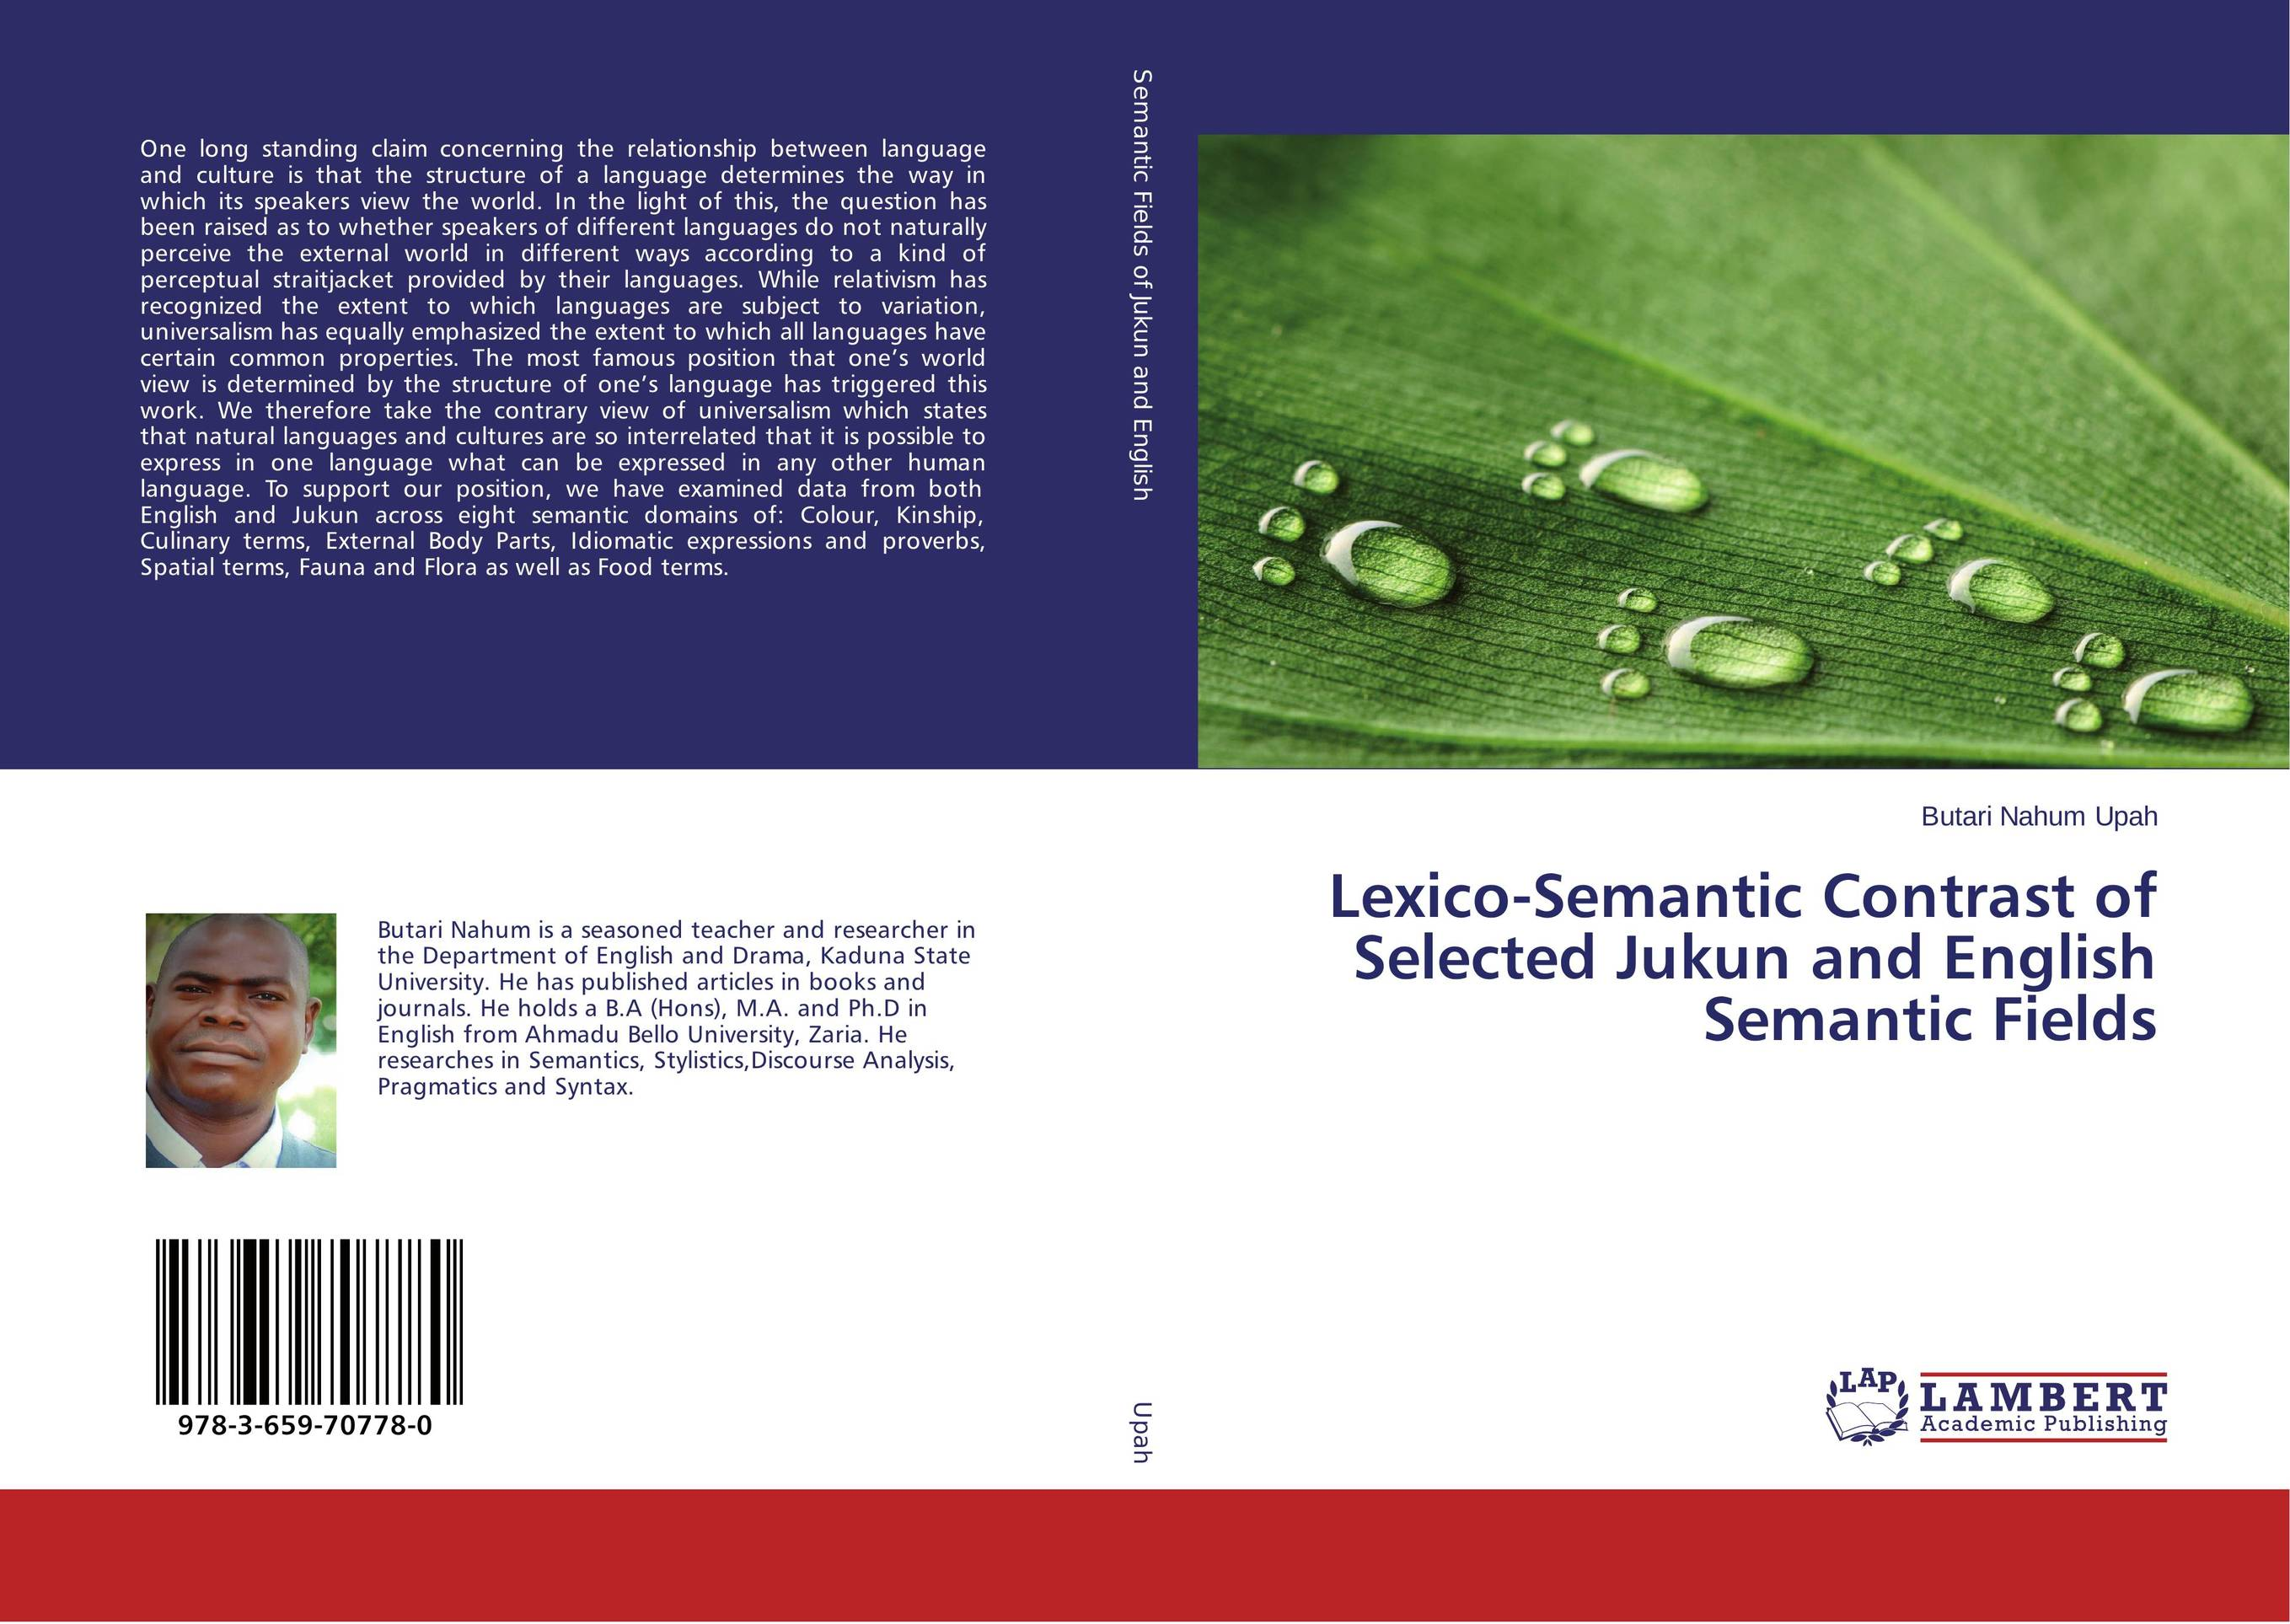 Lexico-Semantic Contrast of Selected Jukun and English Semantic Fields introduction to the languages of the world